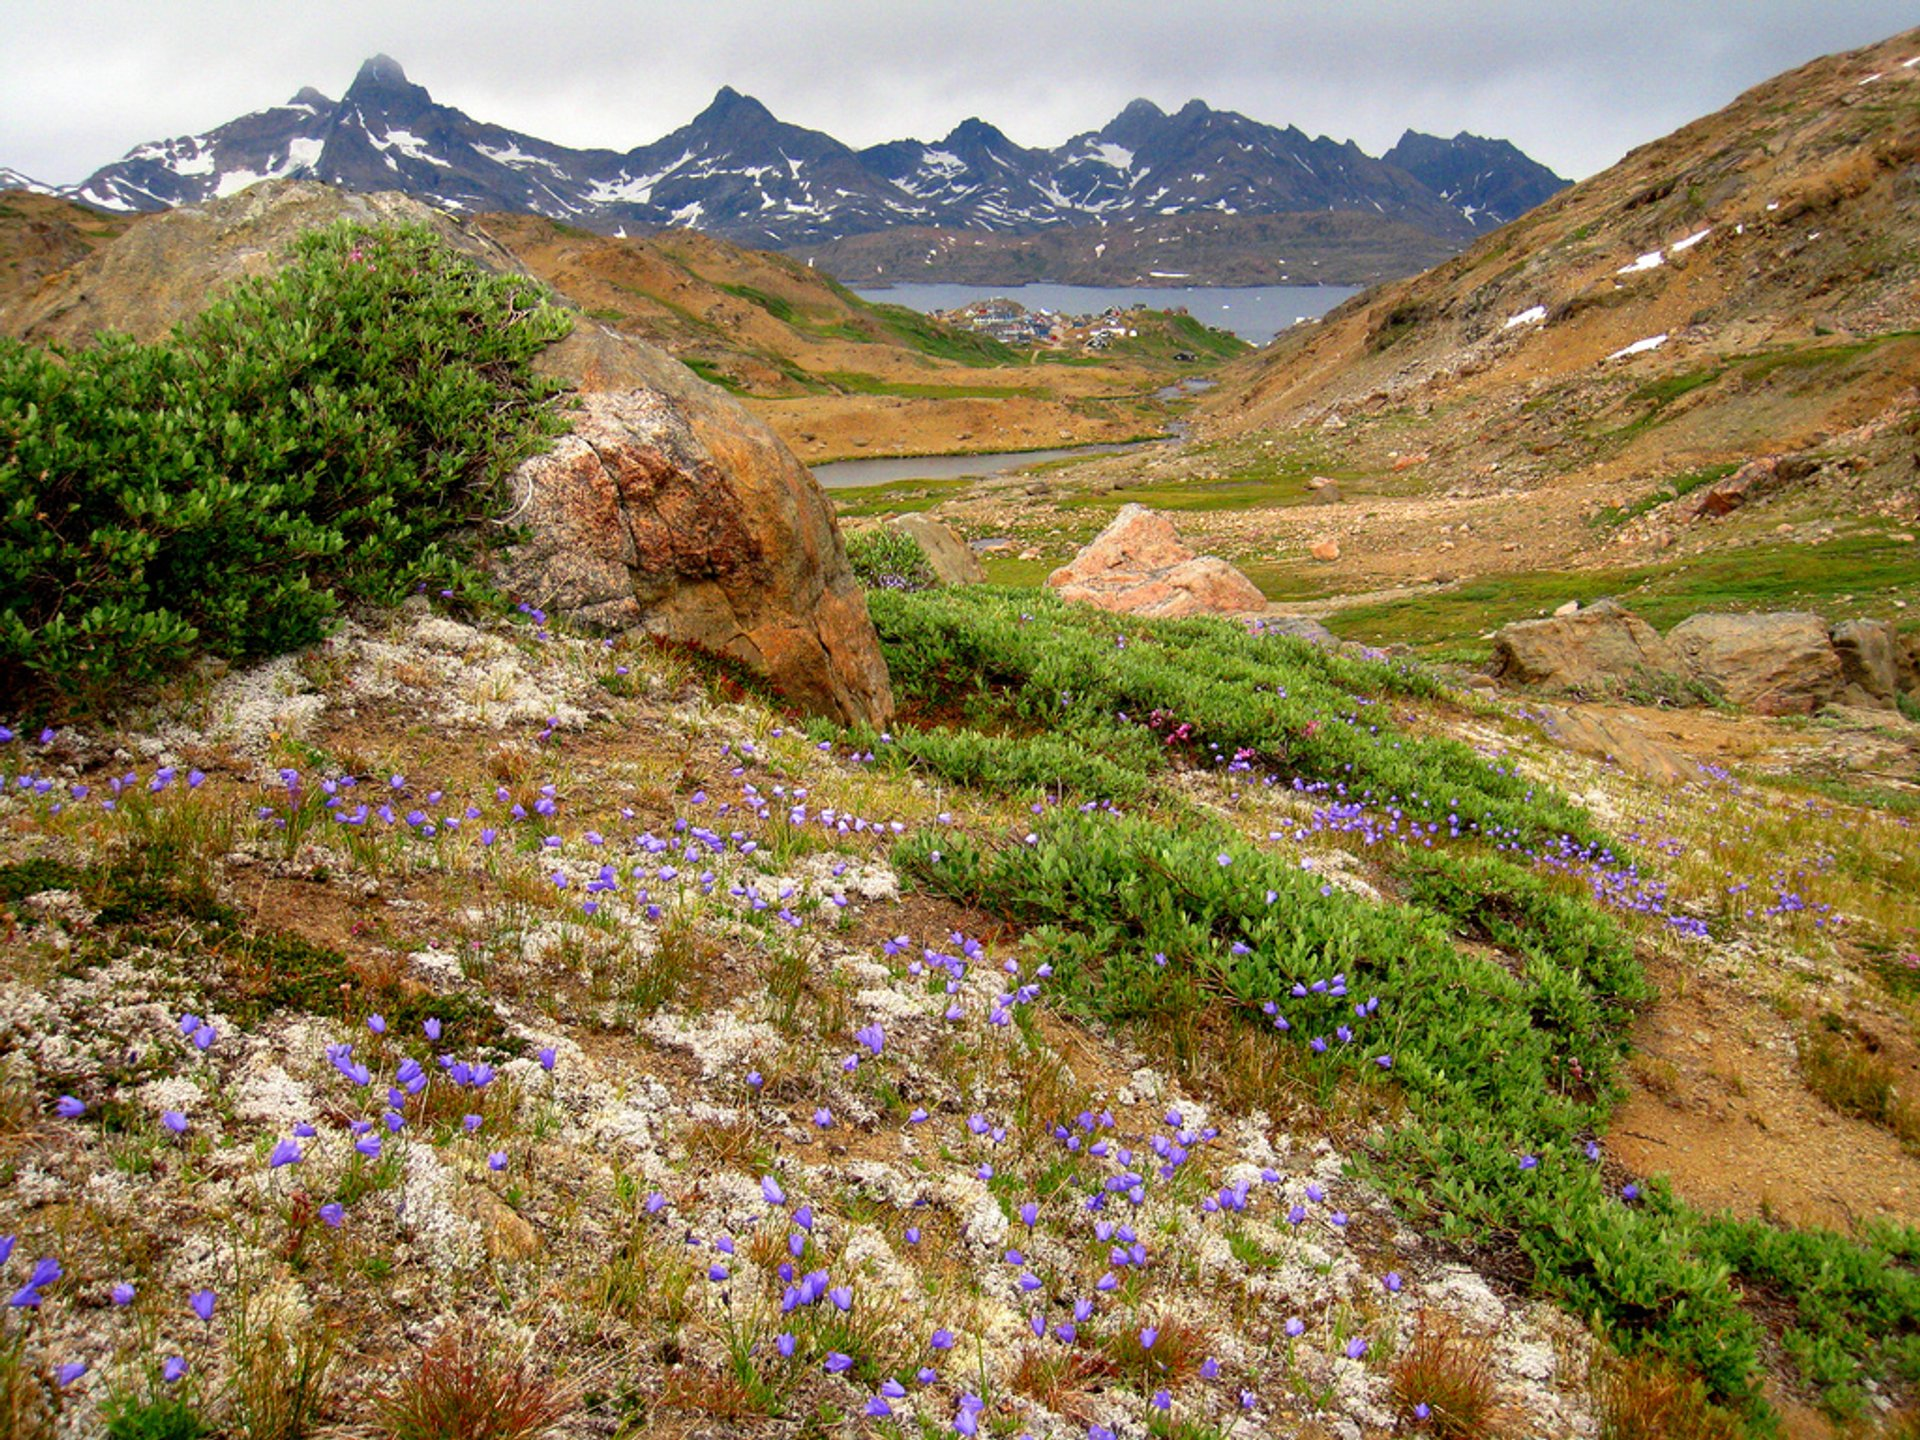 Valley of the Flowers, Tasiilaq 2019